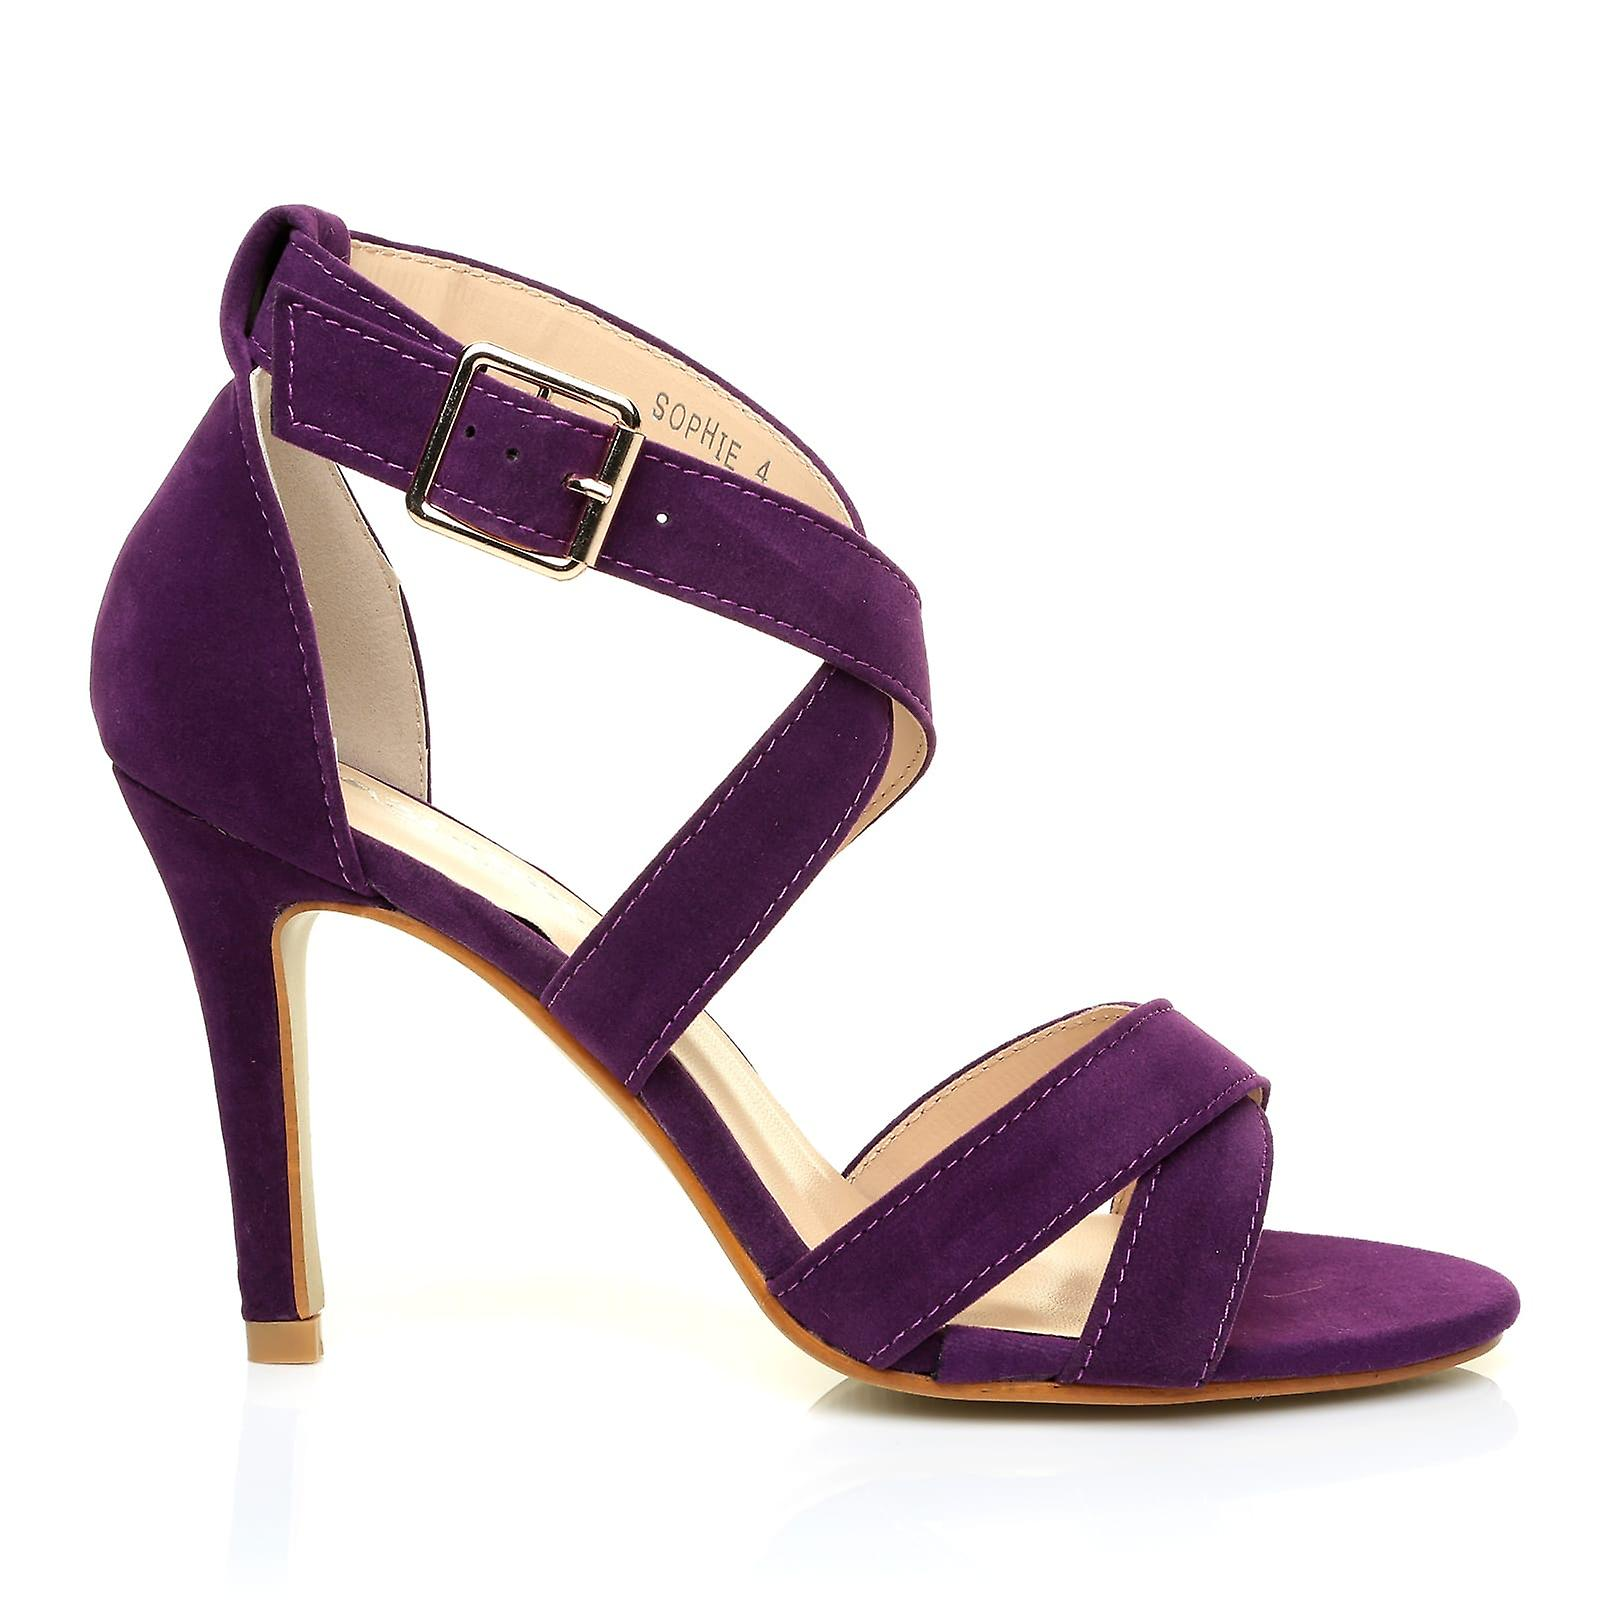 SOPHIE Suede Strappy Sandals Faux Heel Purple High q4aHF